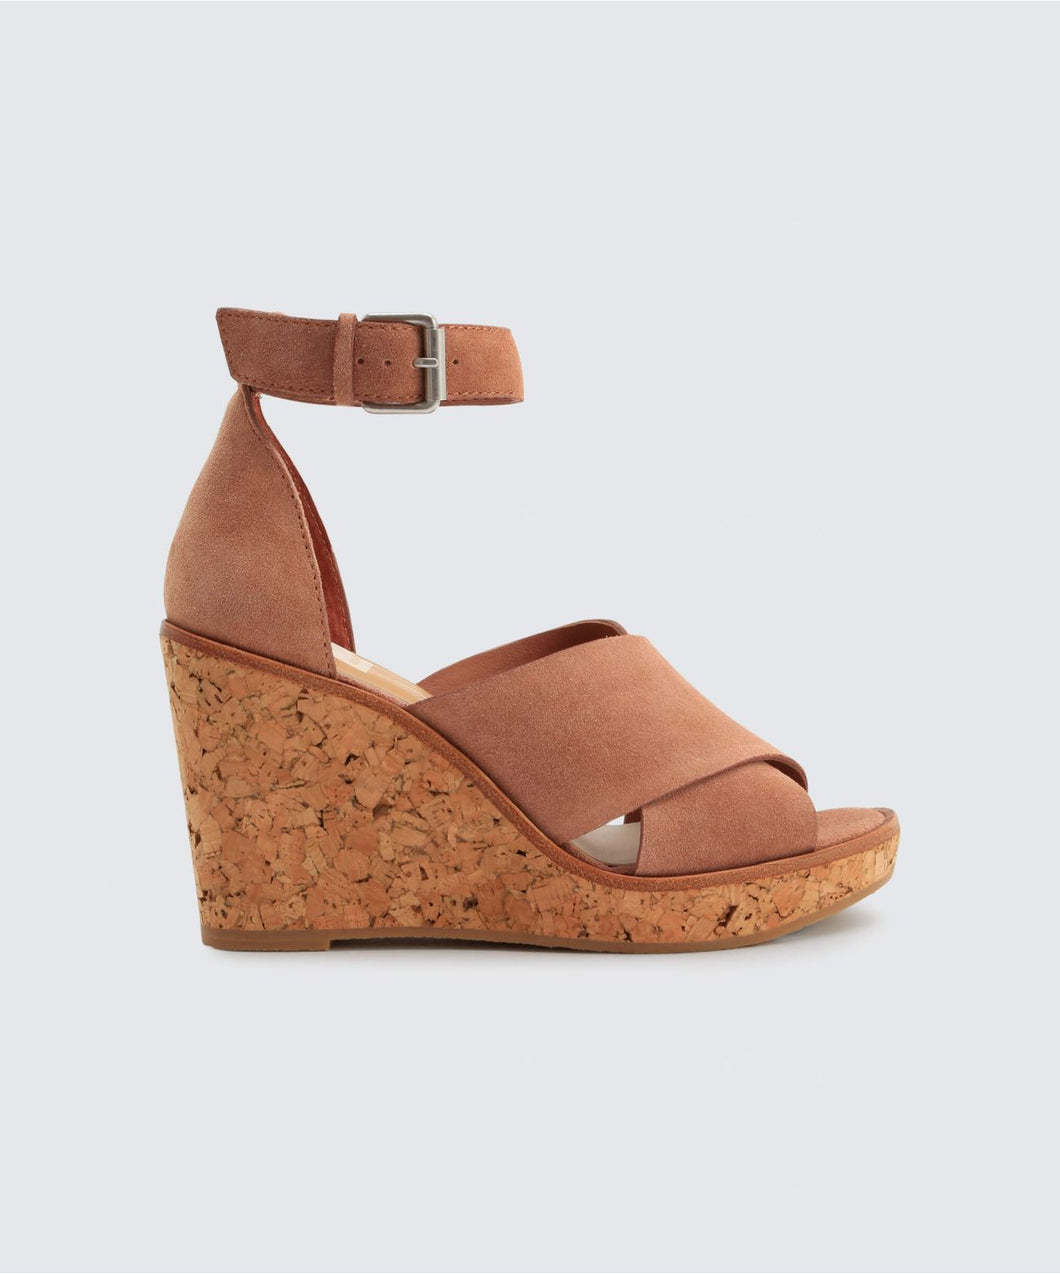 URBANE WEDGES IN CLAY -   Dolce Vita